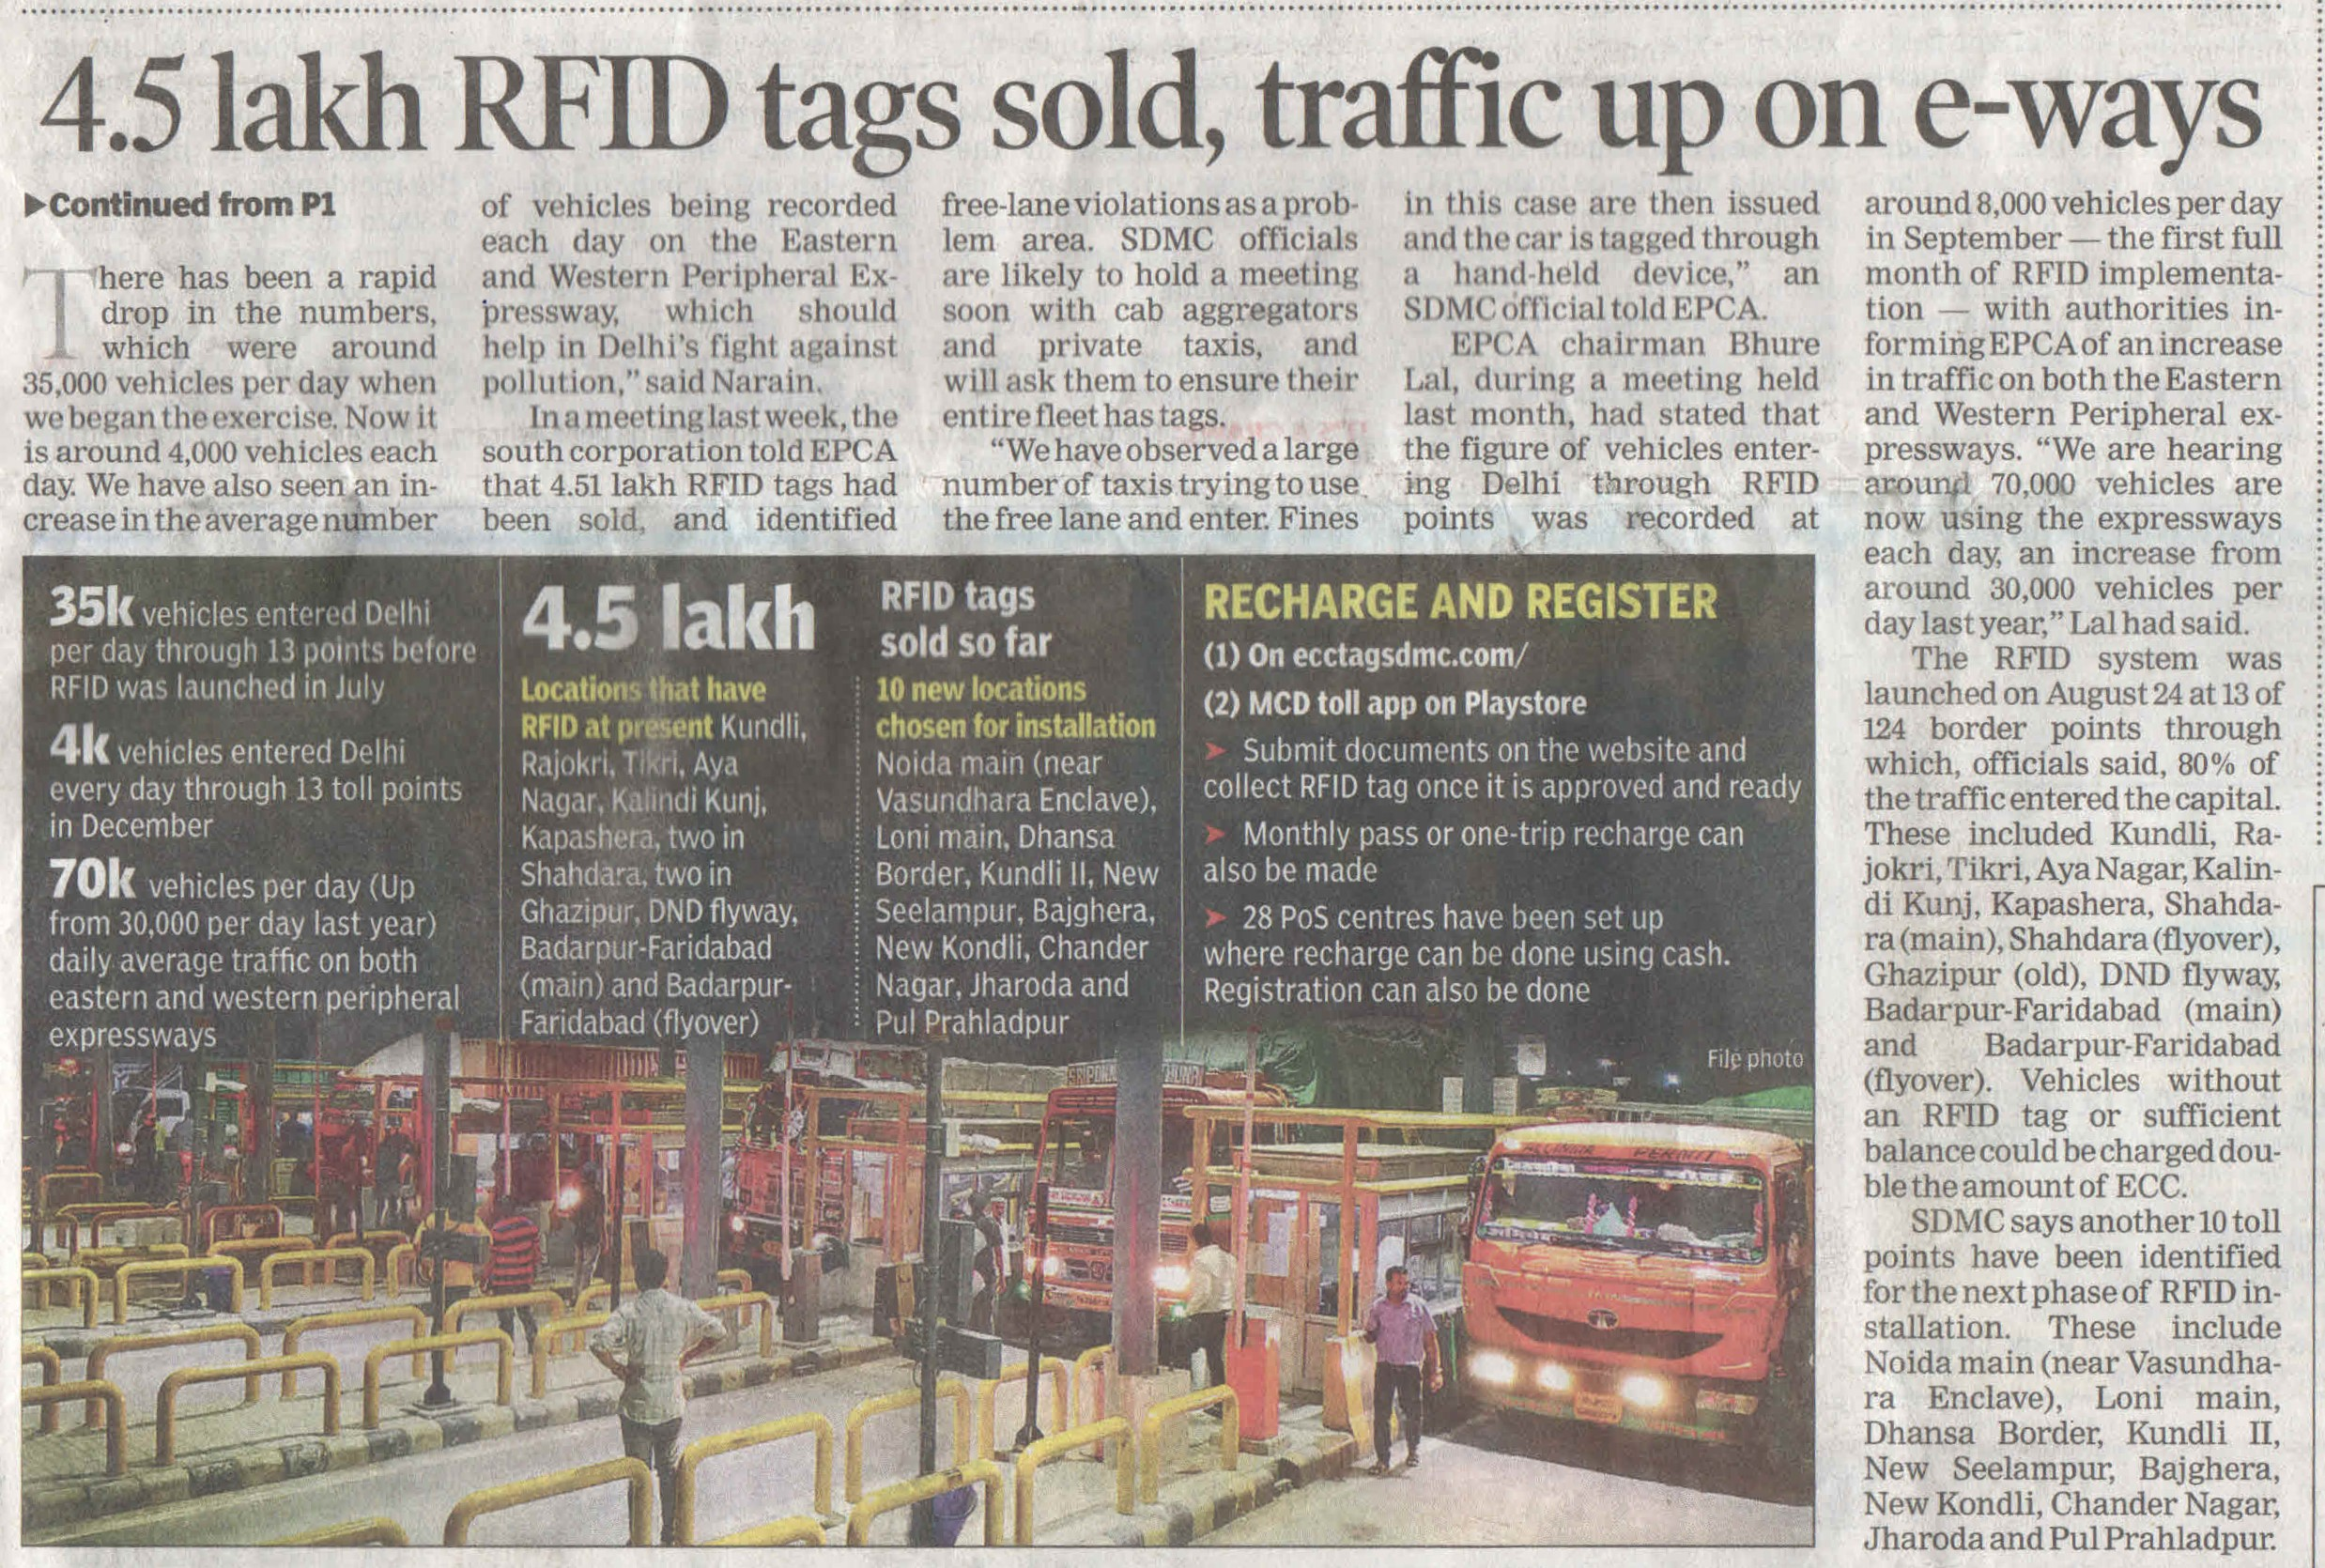 4.5 Lakh RFID tags sold, traffic up on e-ways